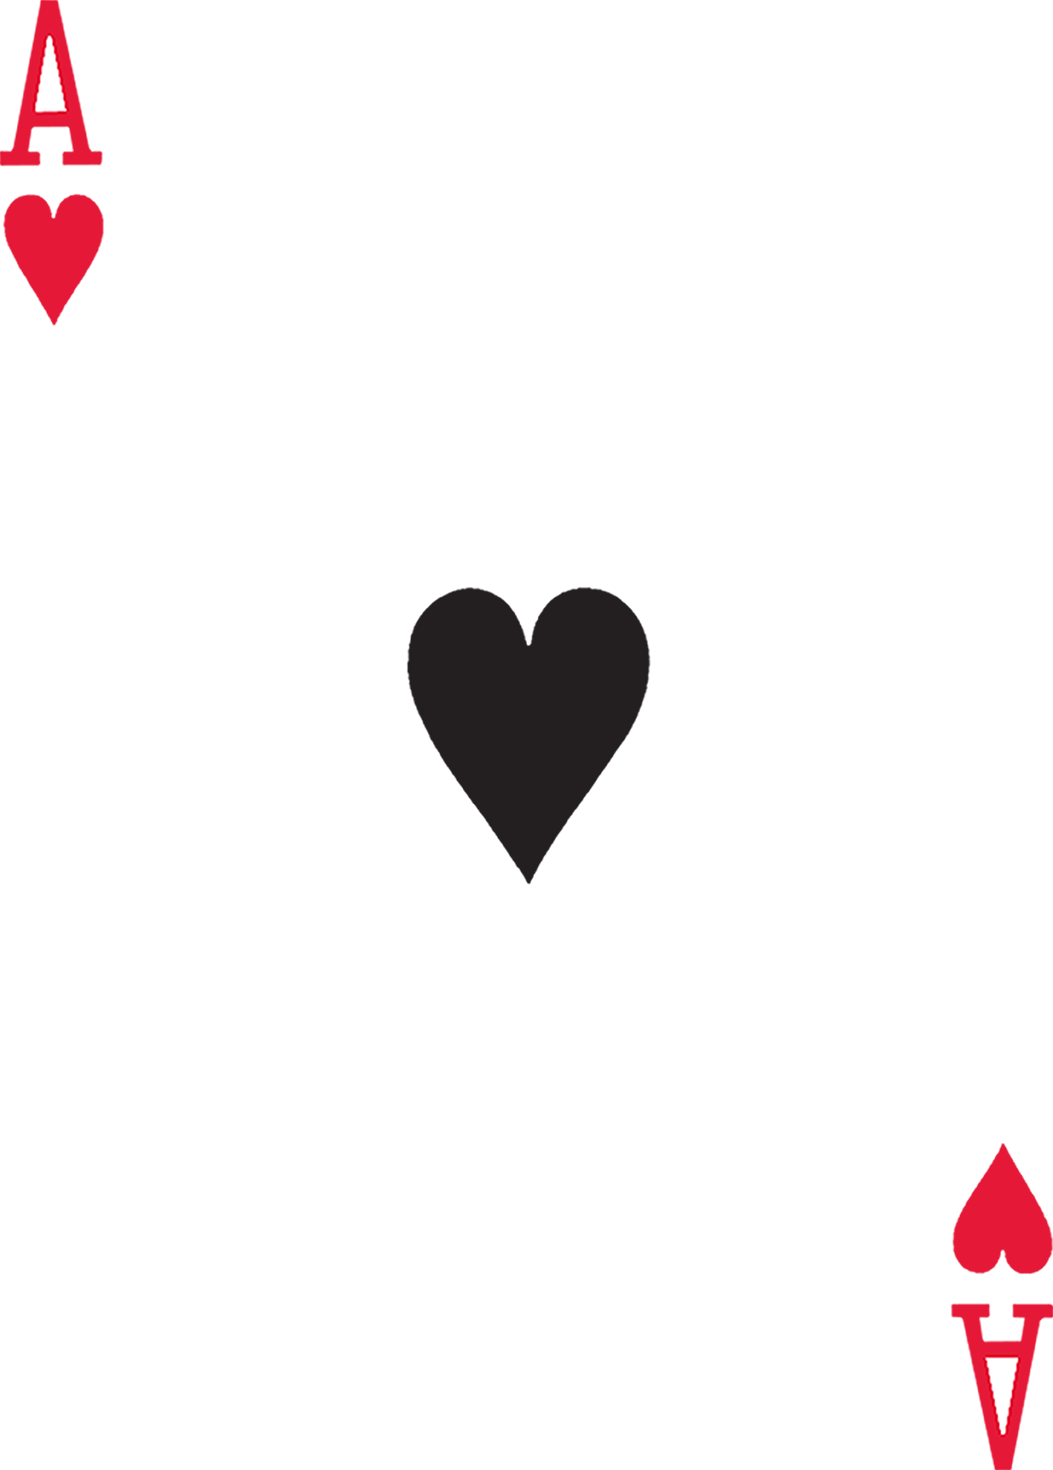 Ace of hearts png. Index wp content uploads